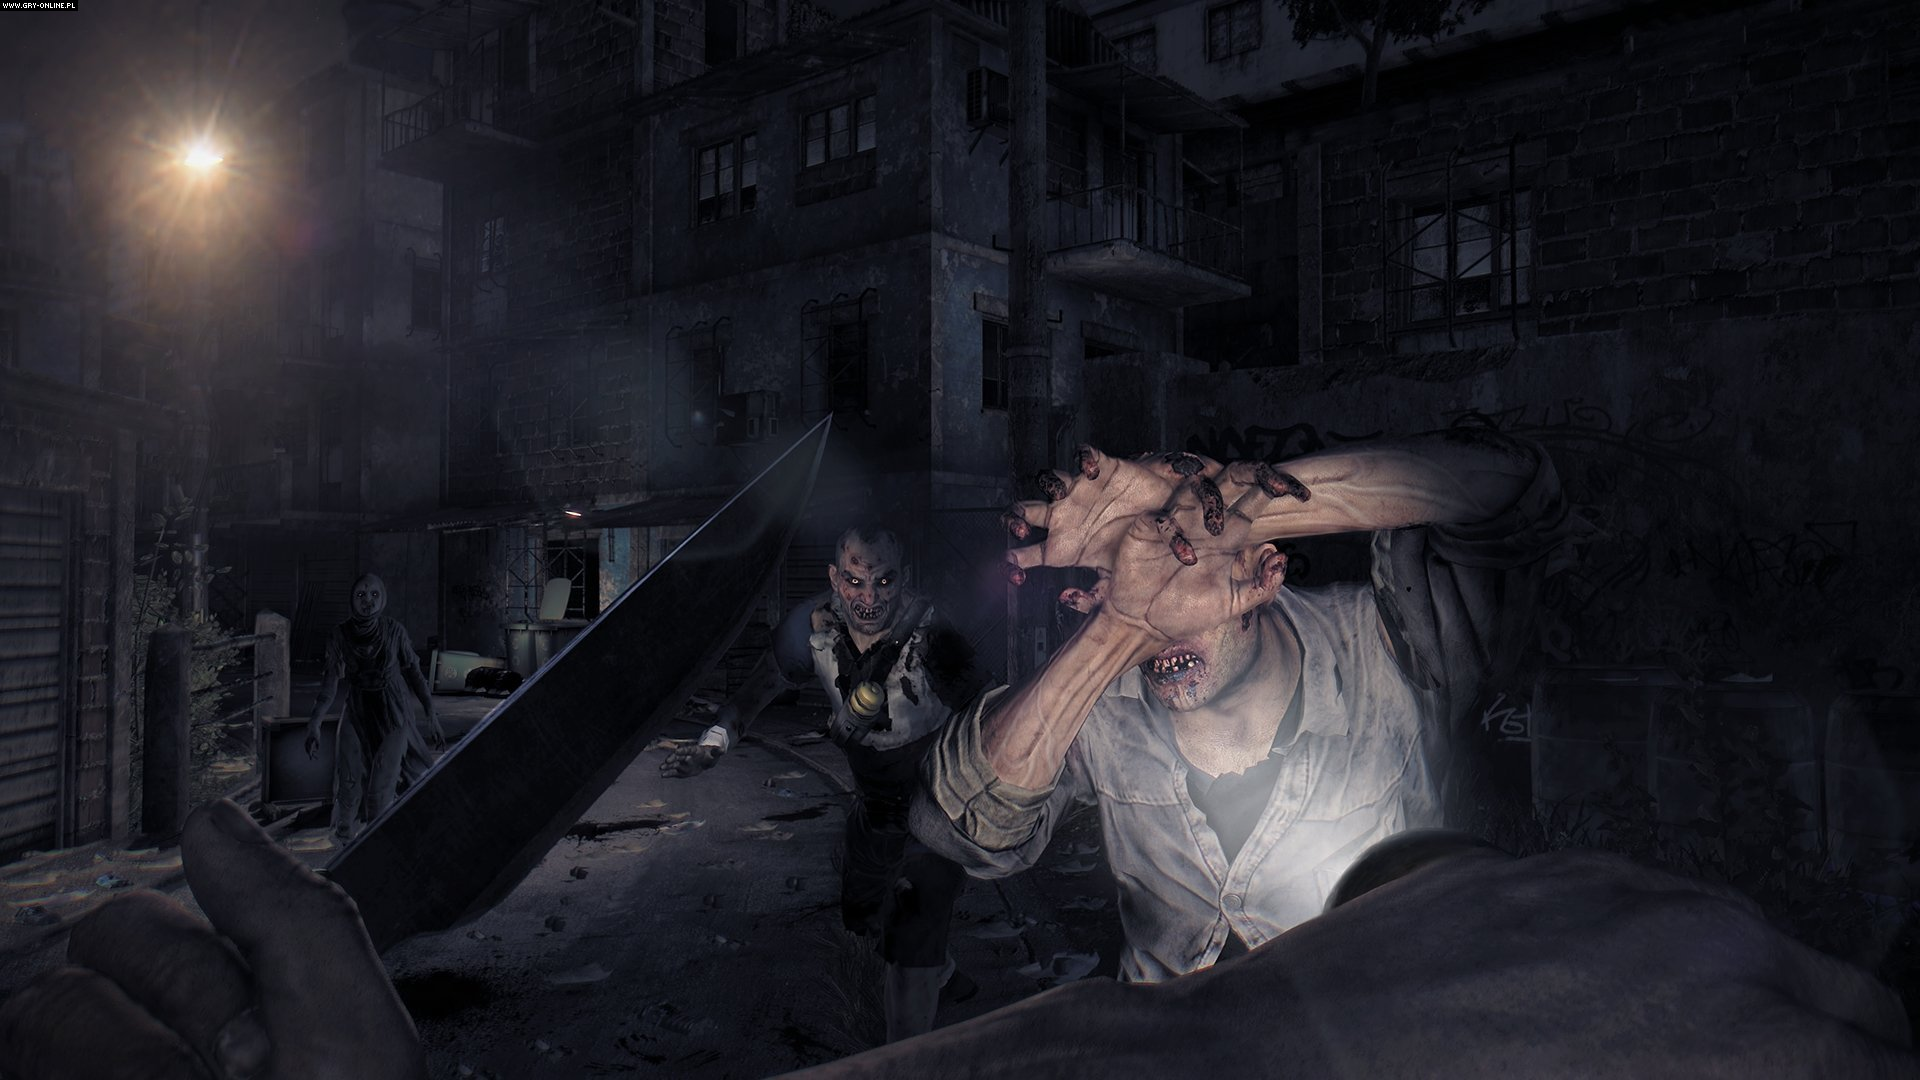 Dying Light Computer Wallpapers, Desktop Backgrounds | 1920x1080 | ID ...